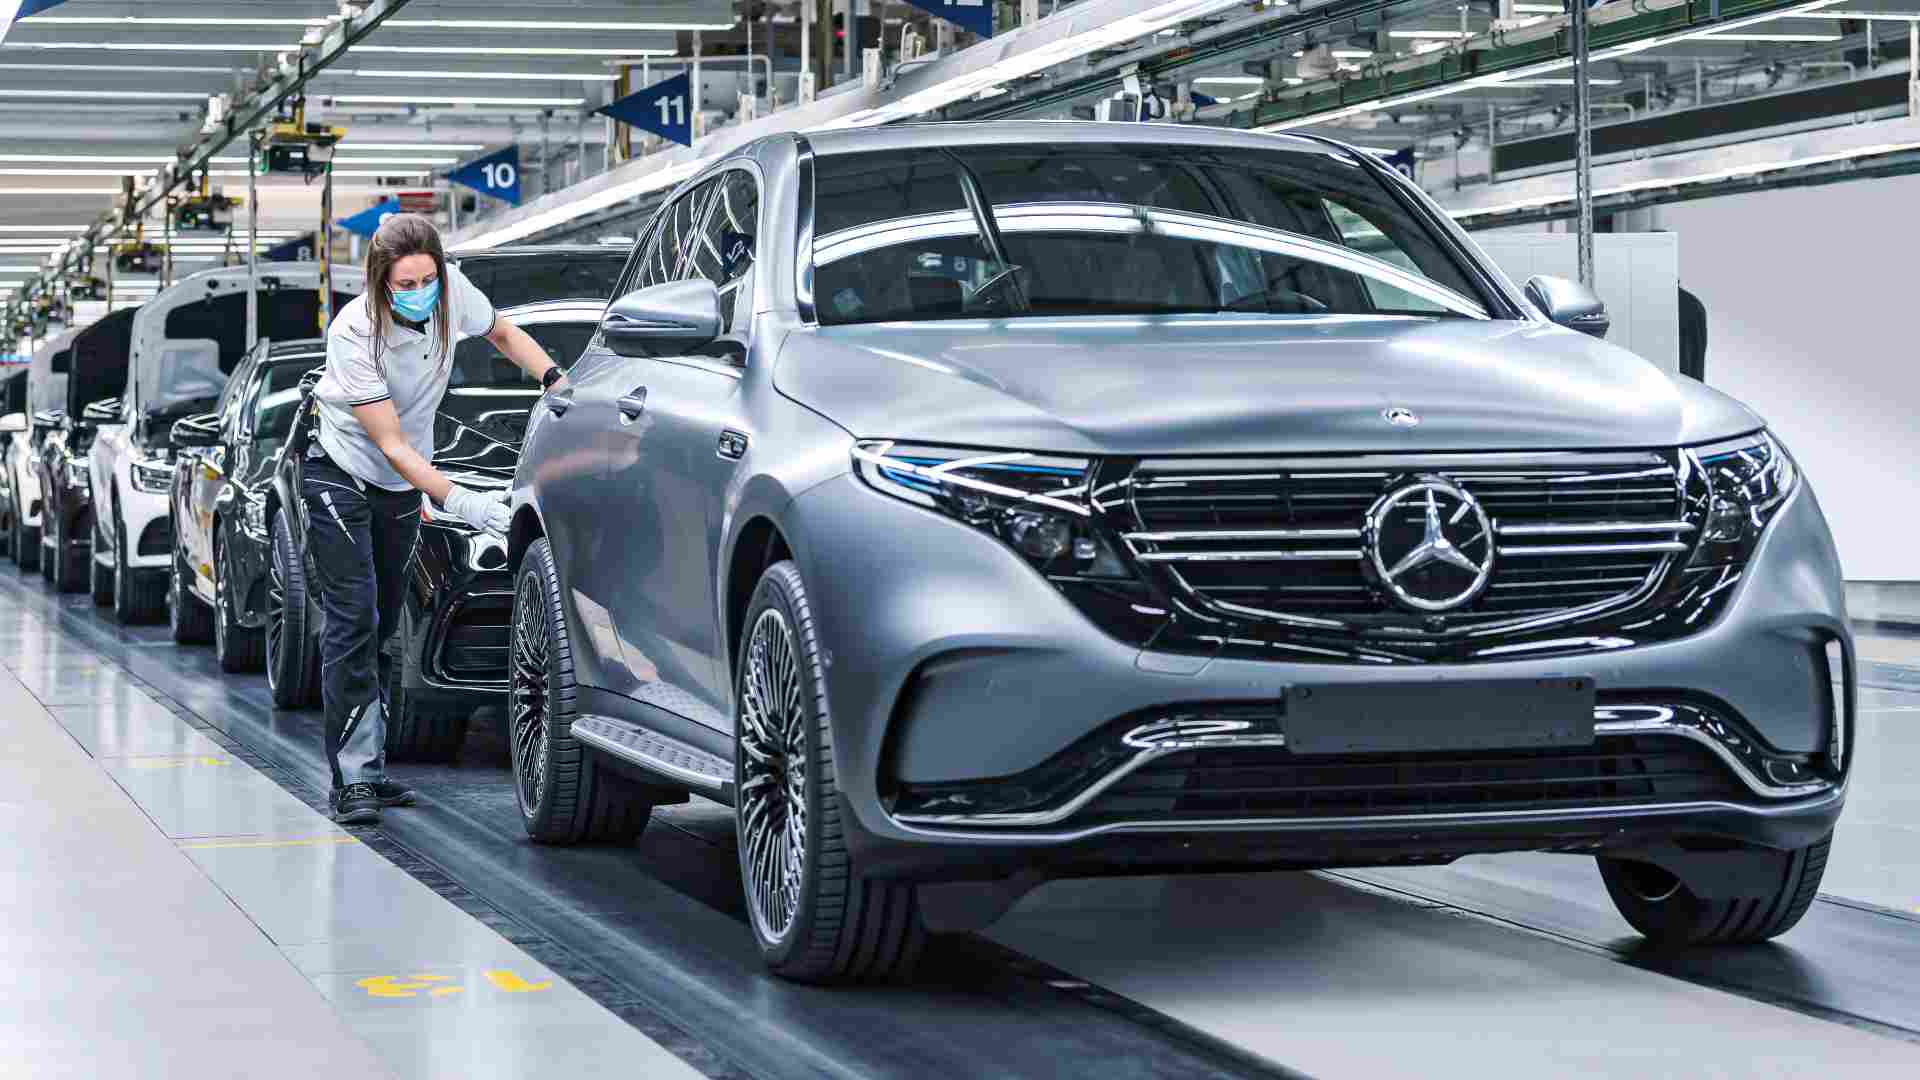 Mercedes-Benz estimates electrified vehicles will make up half its global sales by 2025. Image: Mercedes-Benz